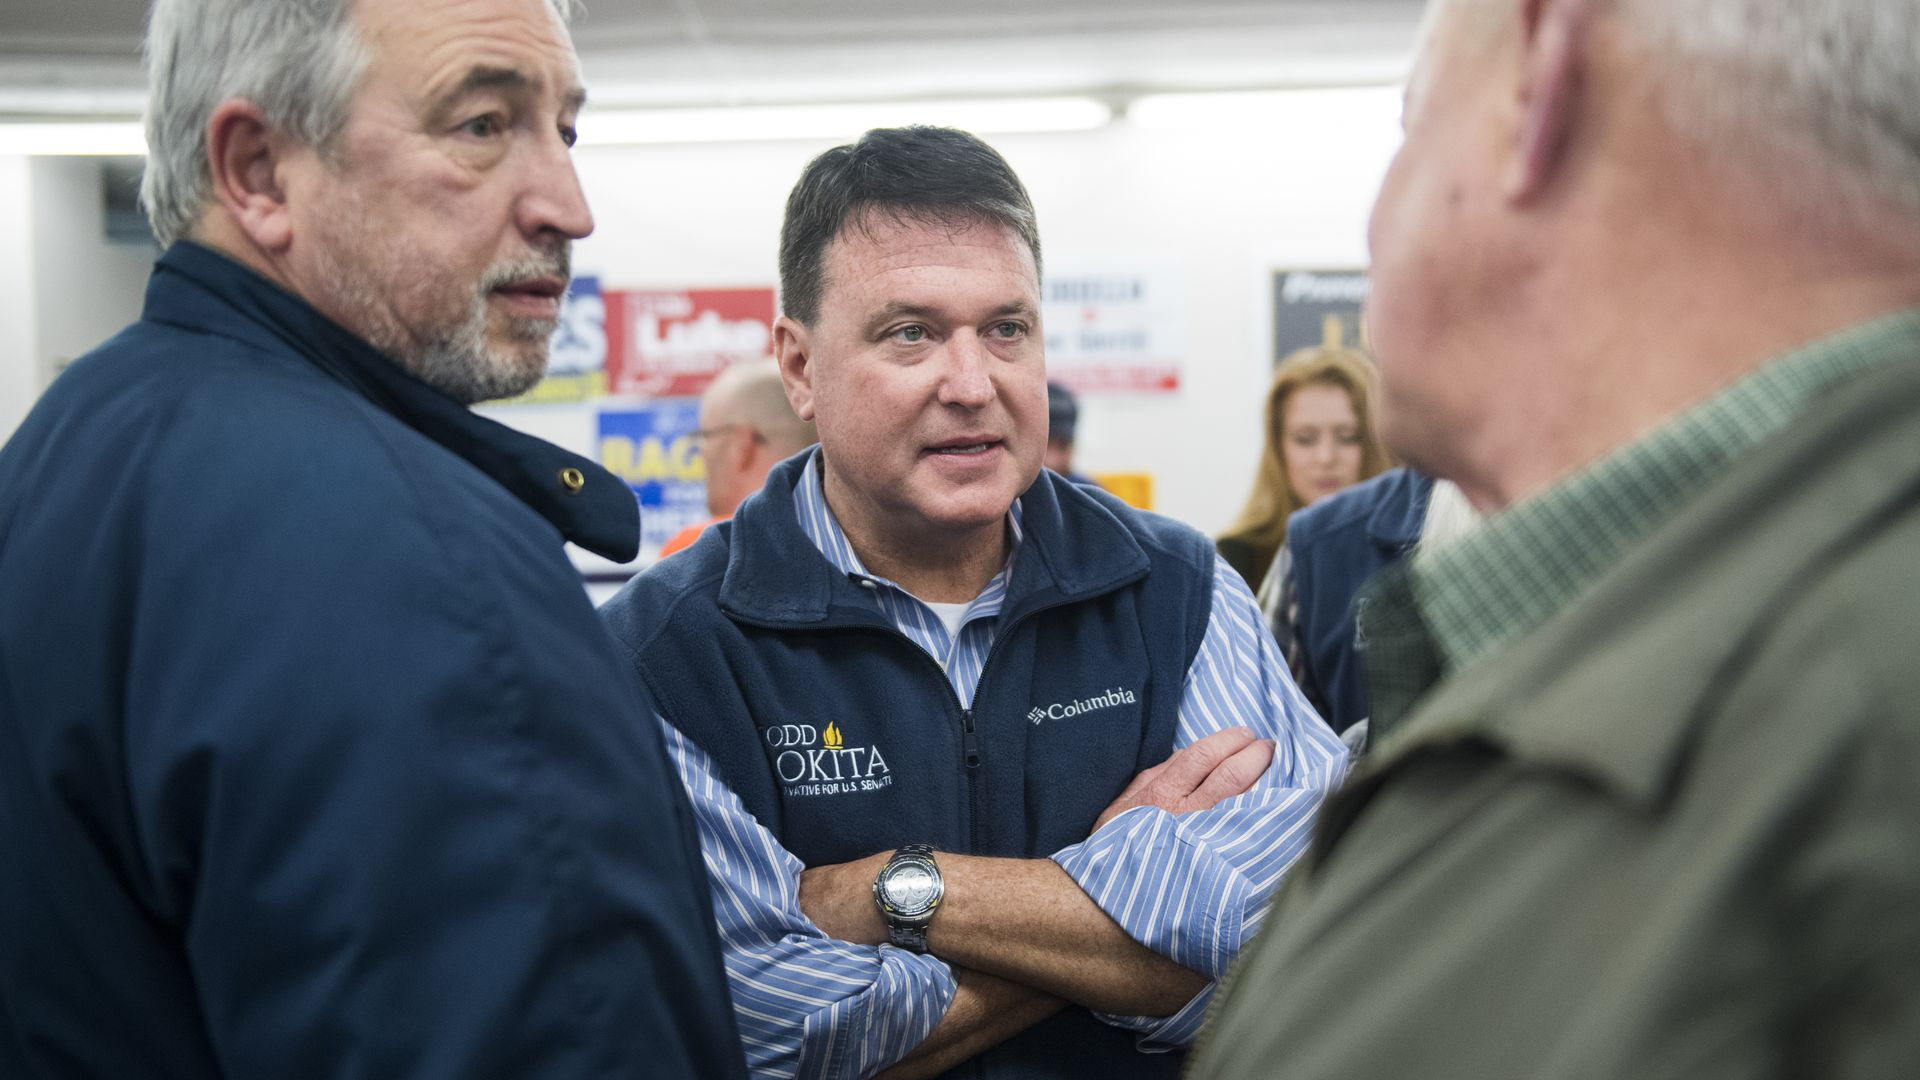 Rep. Todd Rokita in a vest with his arms crossed